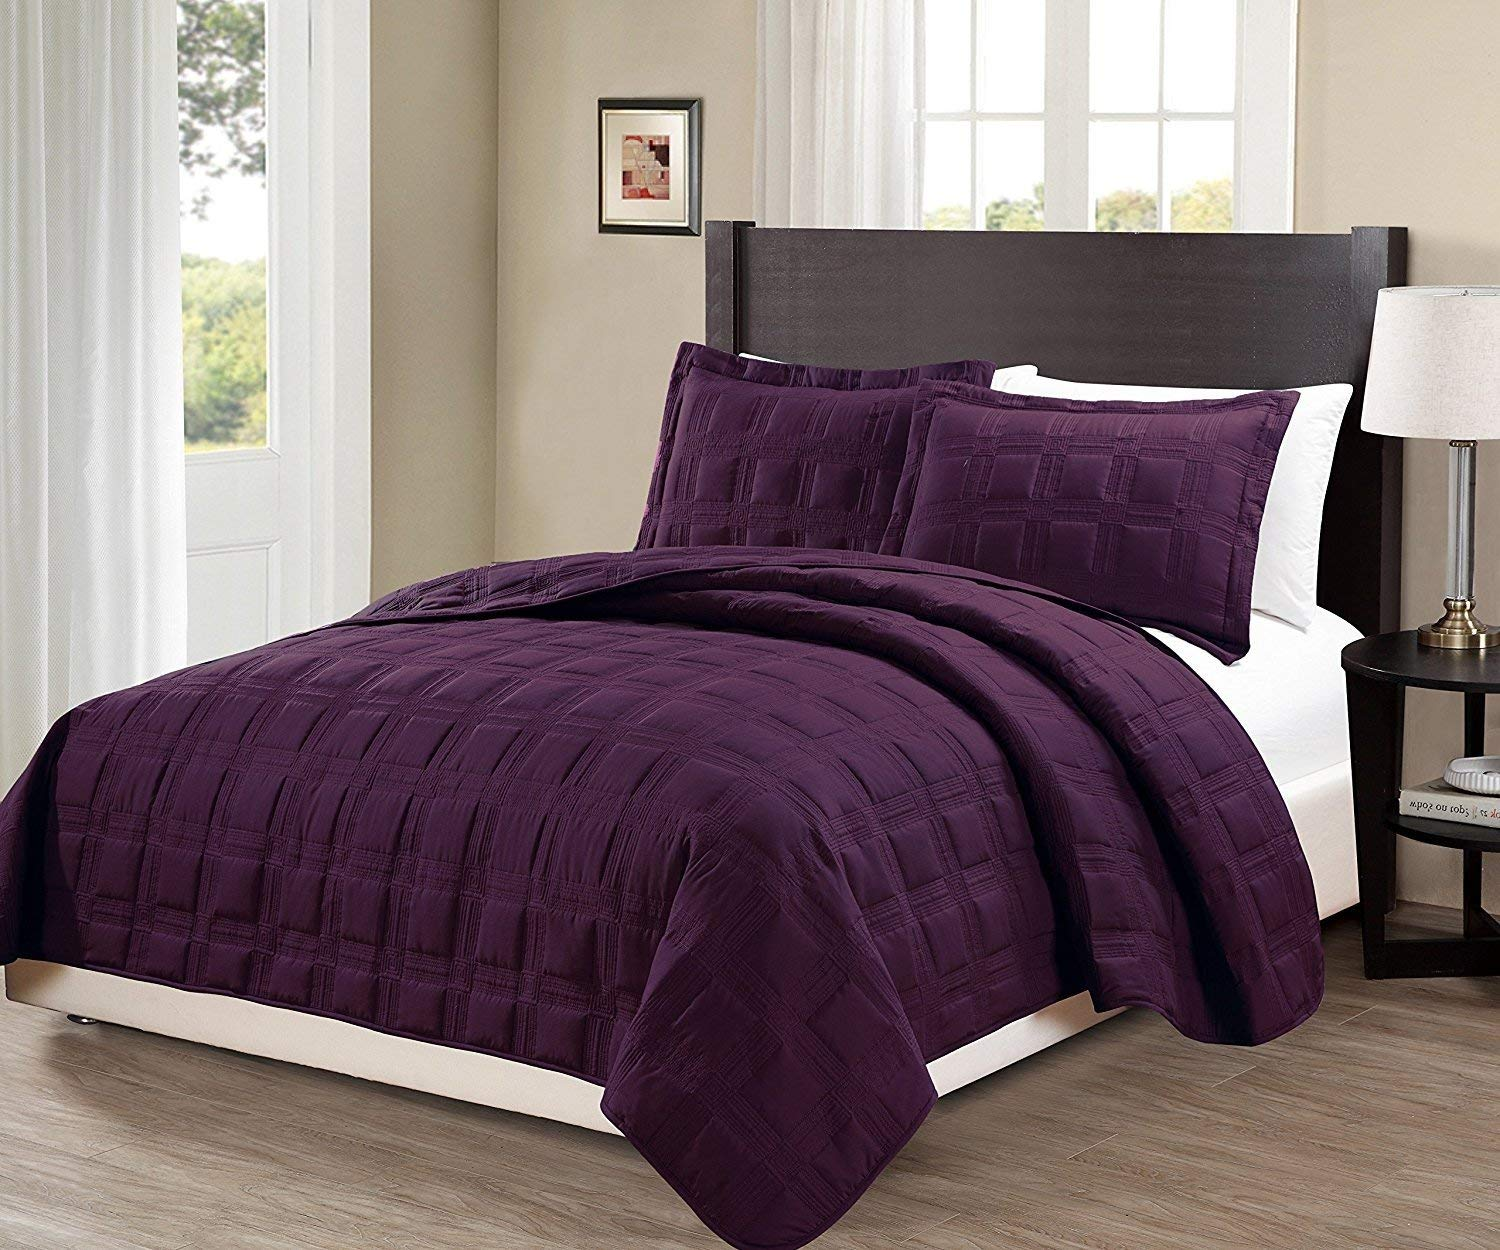 Fancy Collection 3pc Full/Queen Oversize Quilted Embroidery Bedspread Coverlet Set Solid Dark Purple New